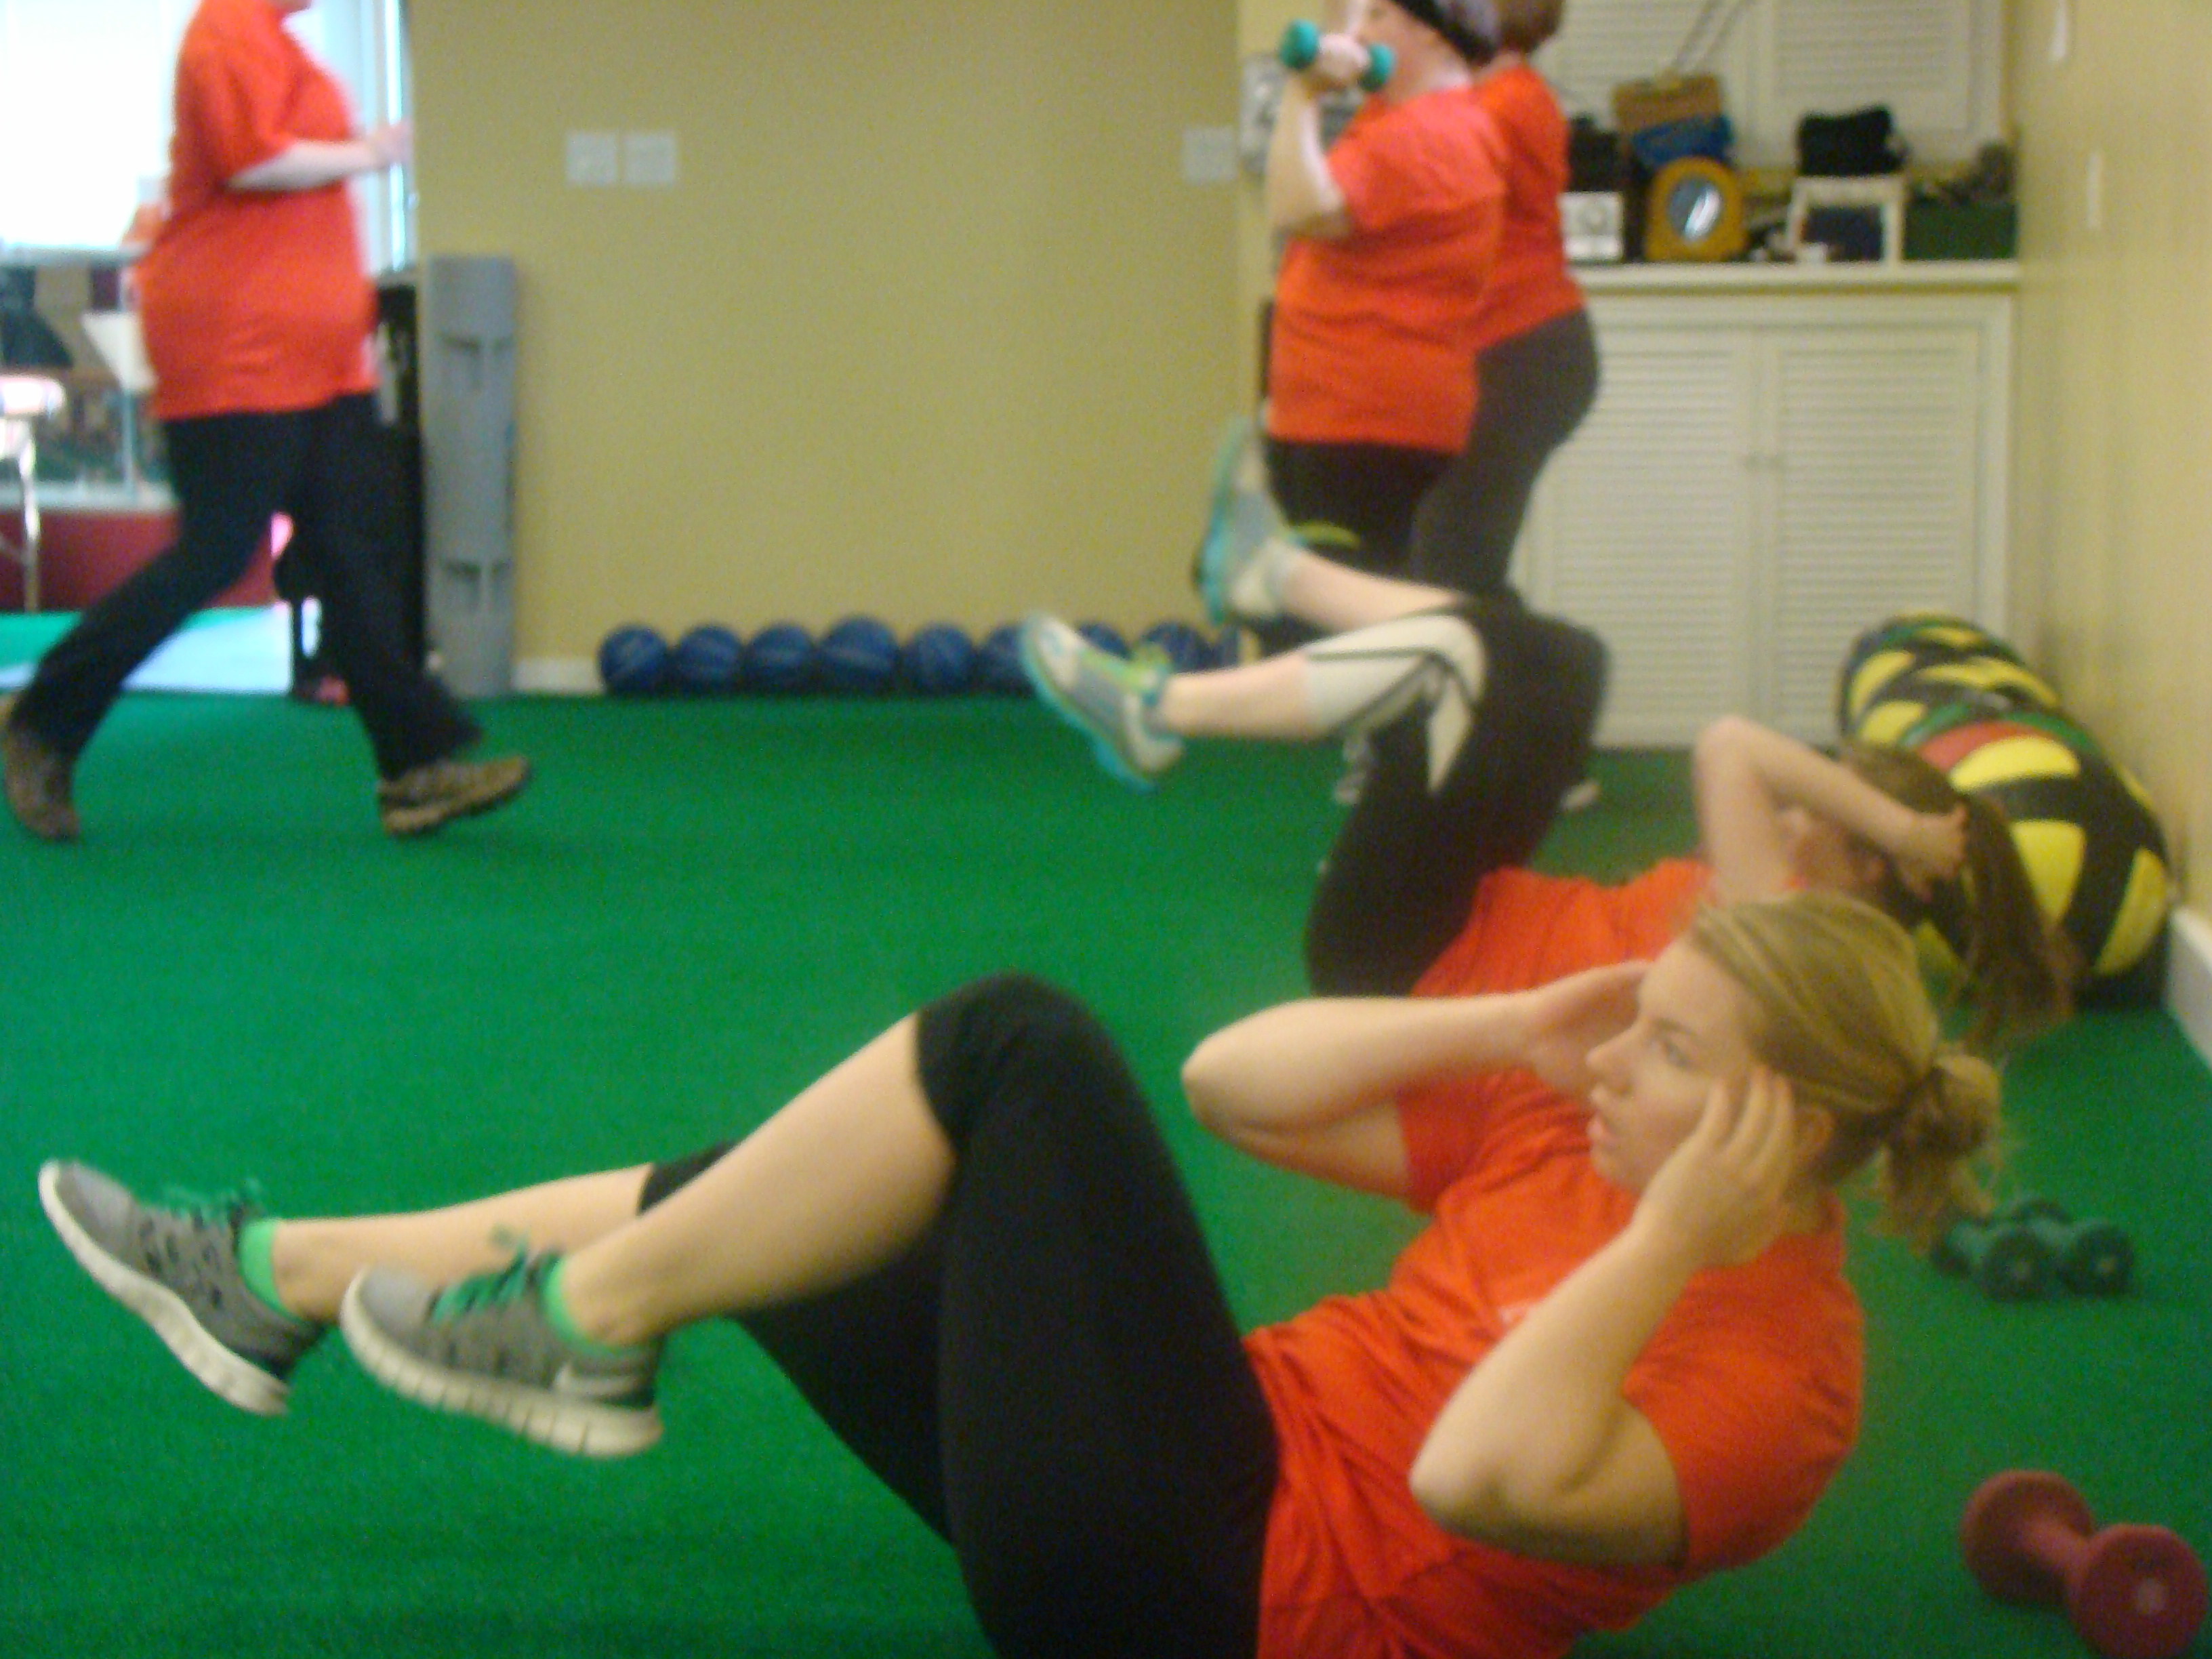 Fitness Kickboxing Bootcamp Simple Circuit Training A Typical Session Will Begin With Warm Up Utilizing Agility Type Drills Footwork Patterns To Get The Muscles And Mind Prepared For